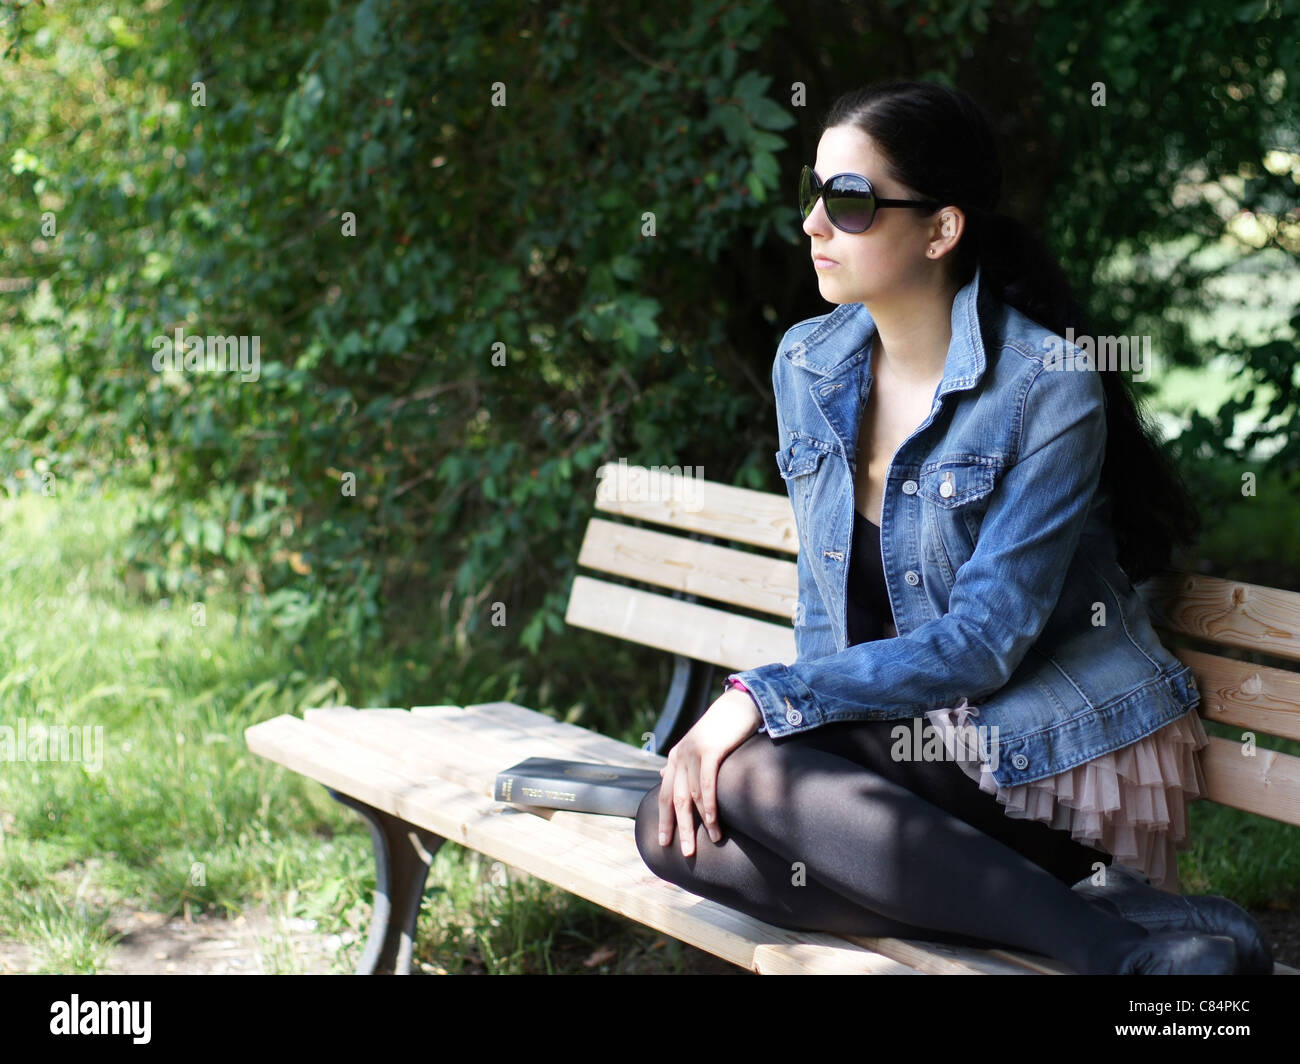 young woman with sunglasses relaxing on park bench - Stock Image